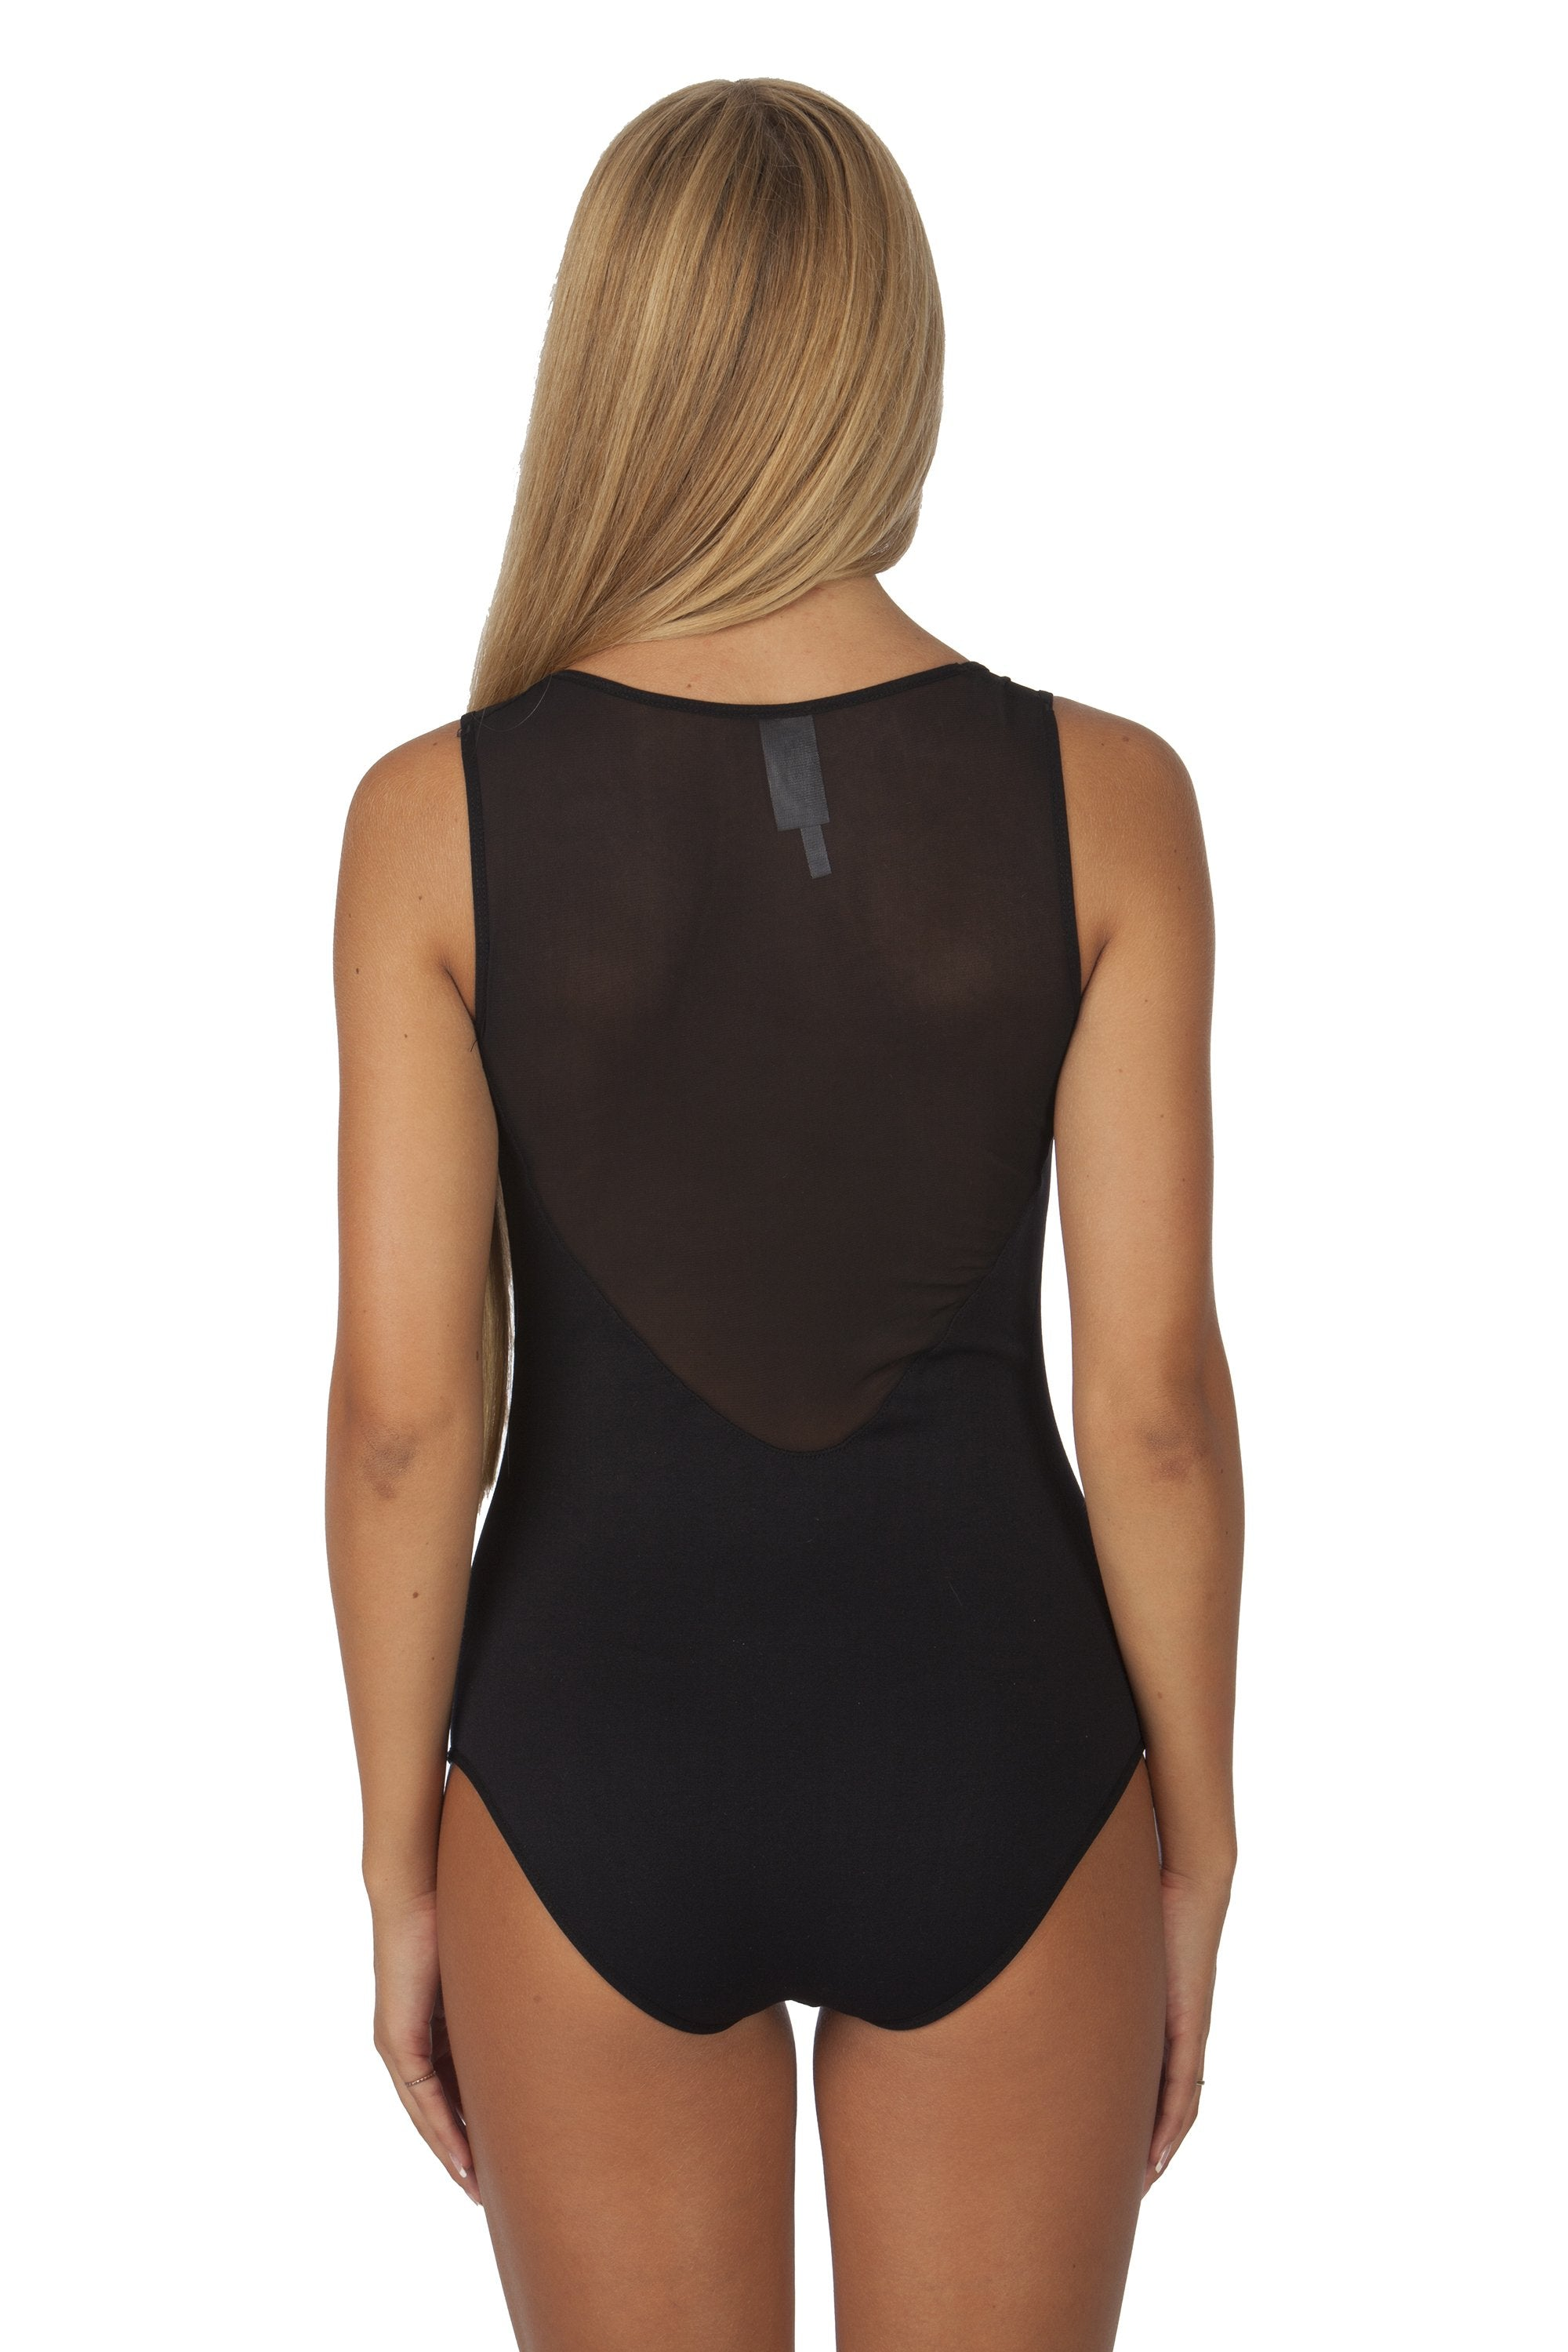 Women's-Sleeveless-Mesh-back-Sweetheart-One-Size-BodySuit